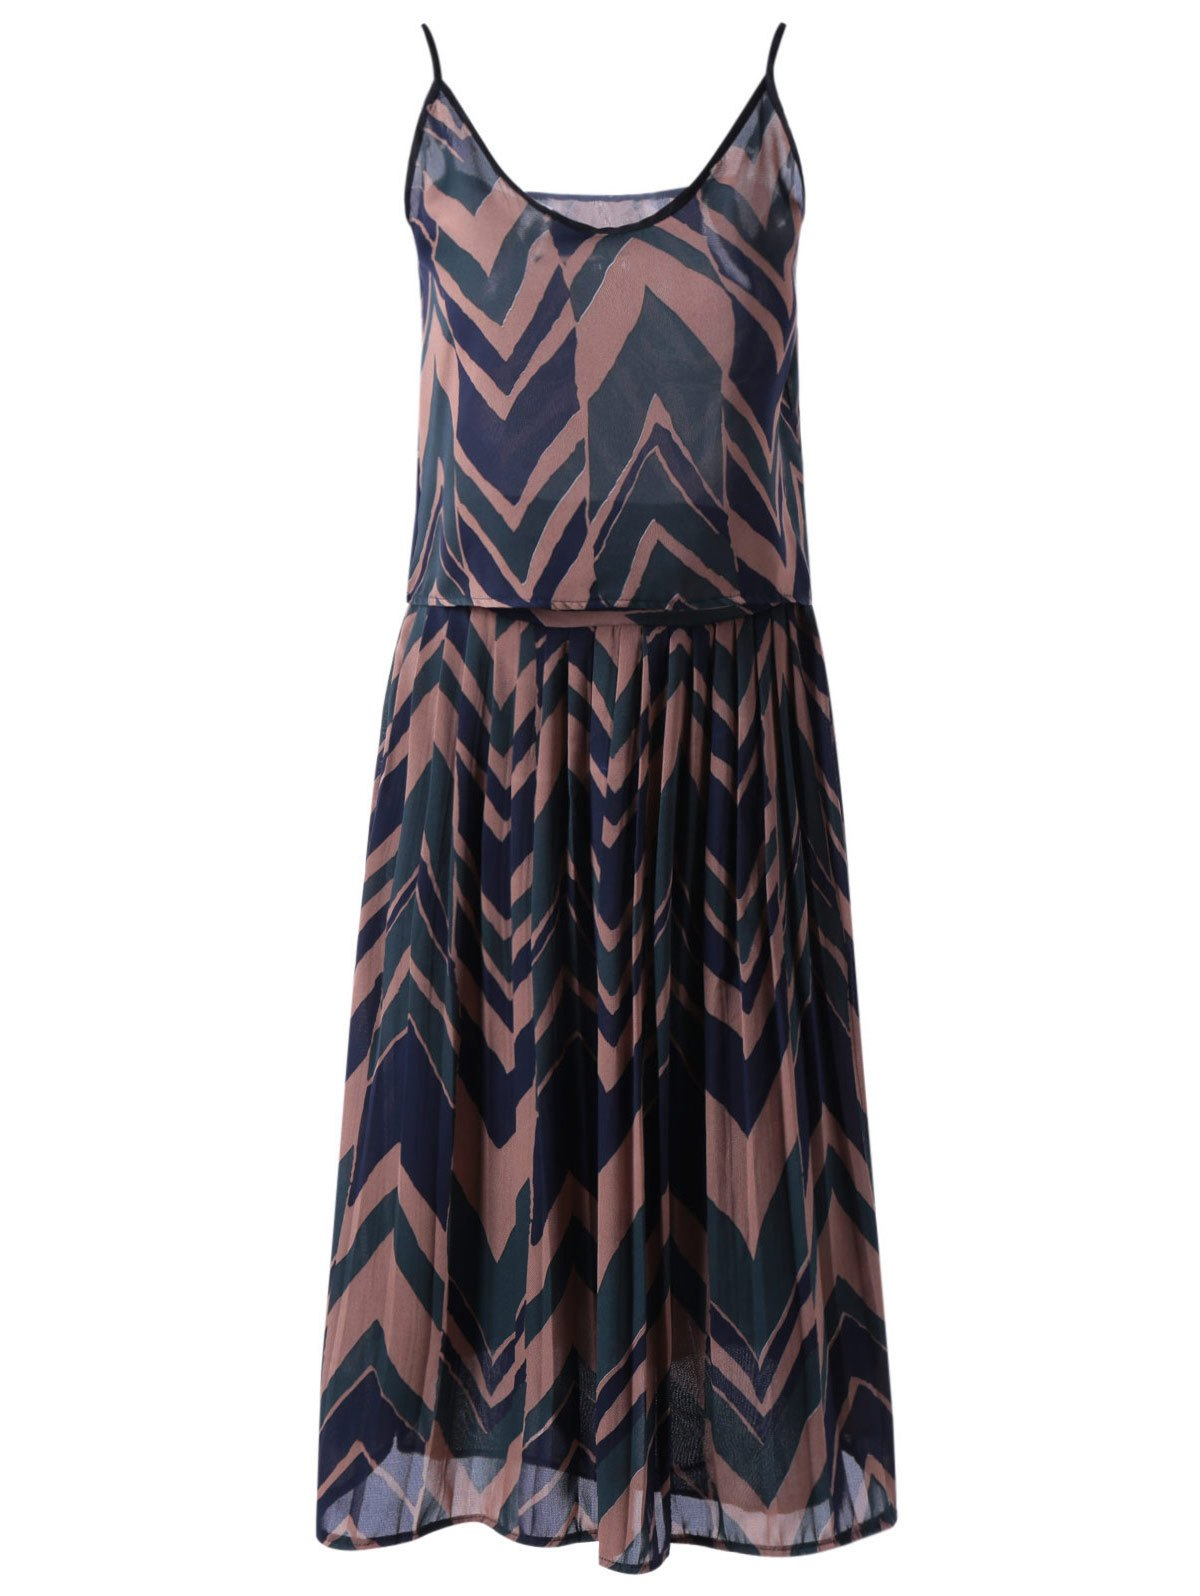 Stylish Women's Spaghetti Strap Geometric Print Crop Top and Pleated Skirt Set